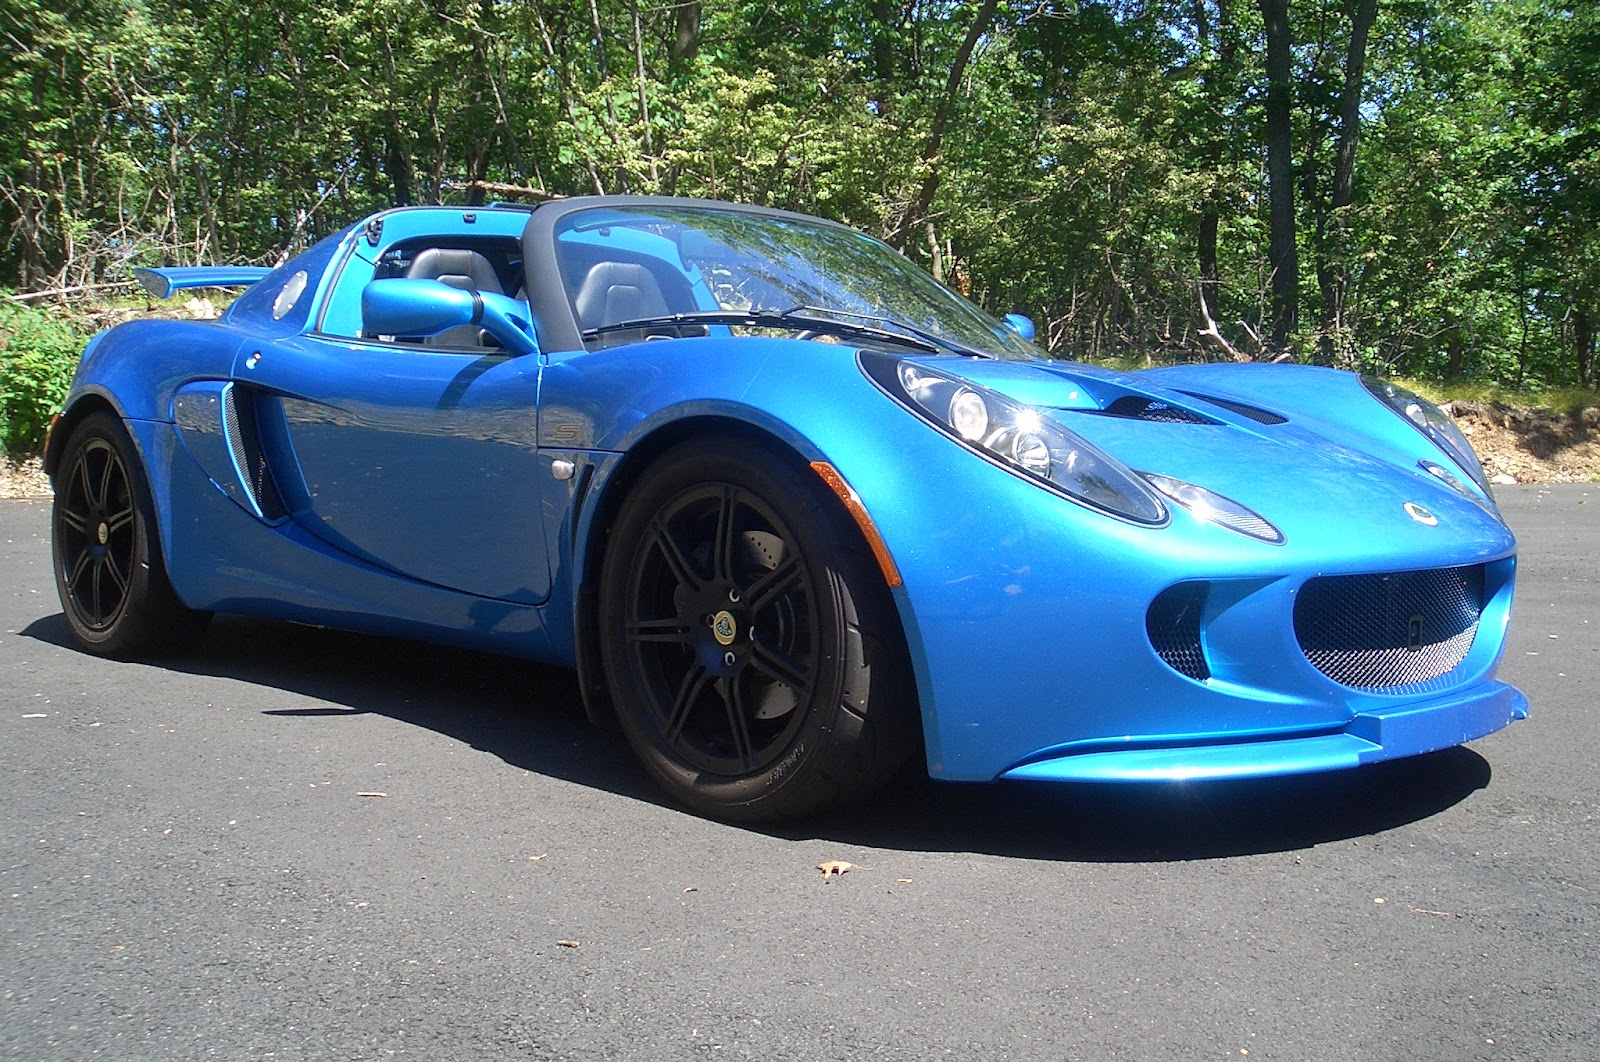 sports cars sport lotus exige wallpapers cool everything web around latest dark colors awesome autos bmw imgstocks nice source meaning